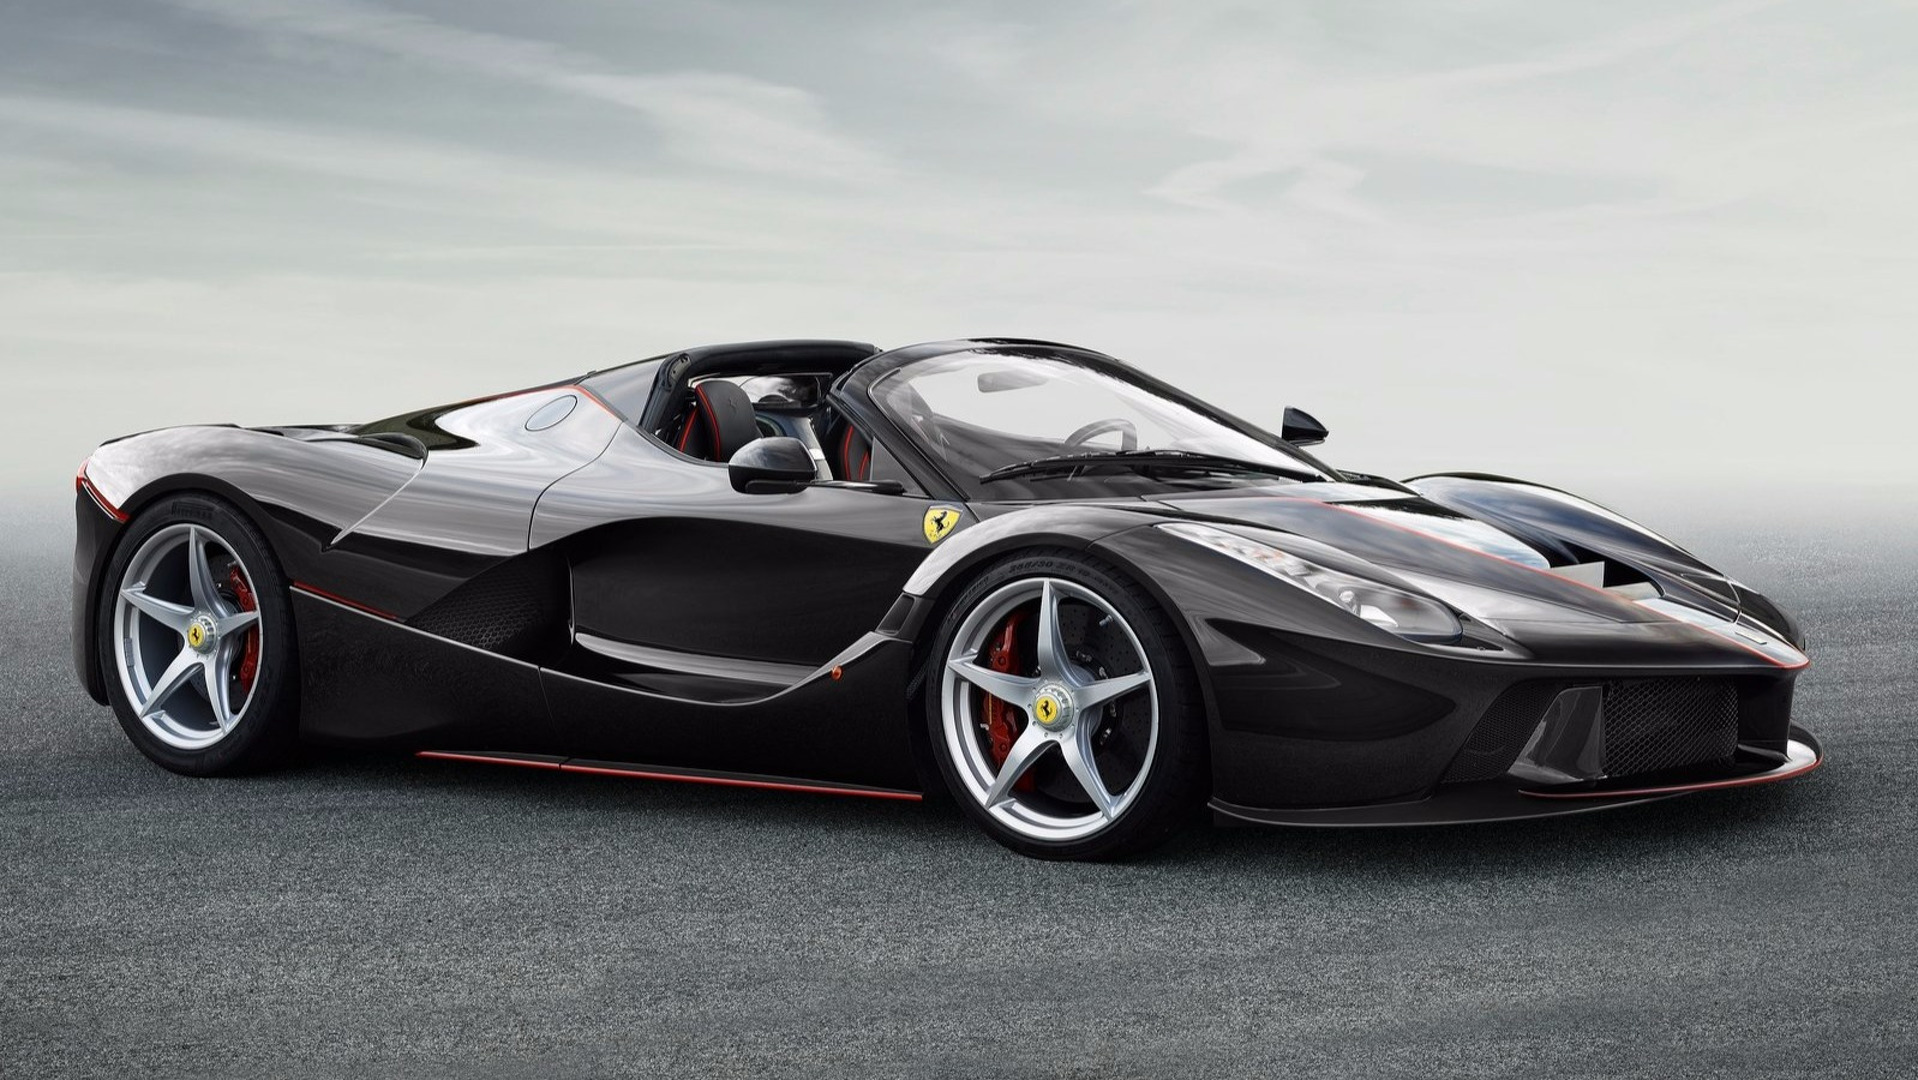 ferrari laferrari aperta news and reviews motor1 comferrari laferrari aperta